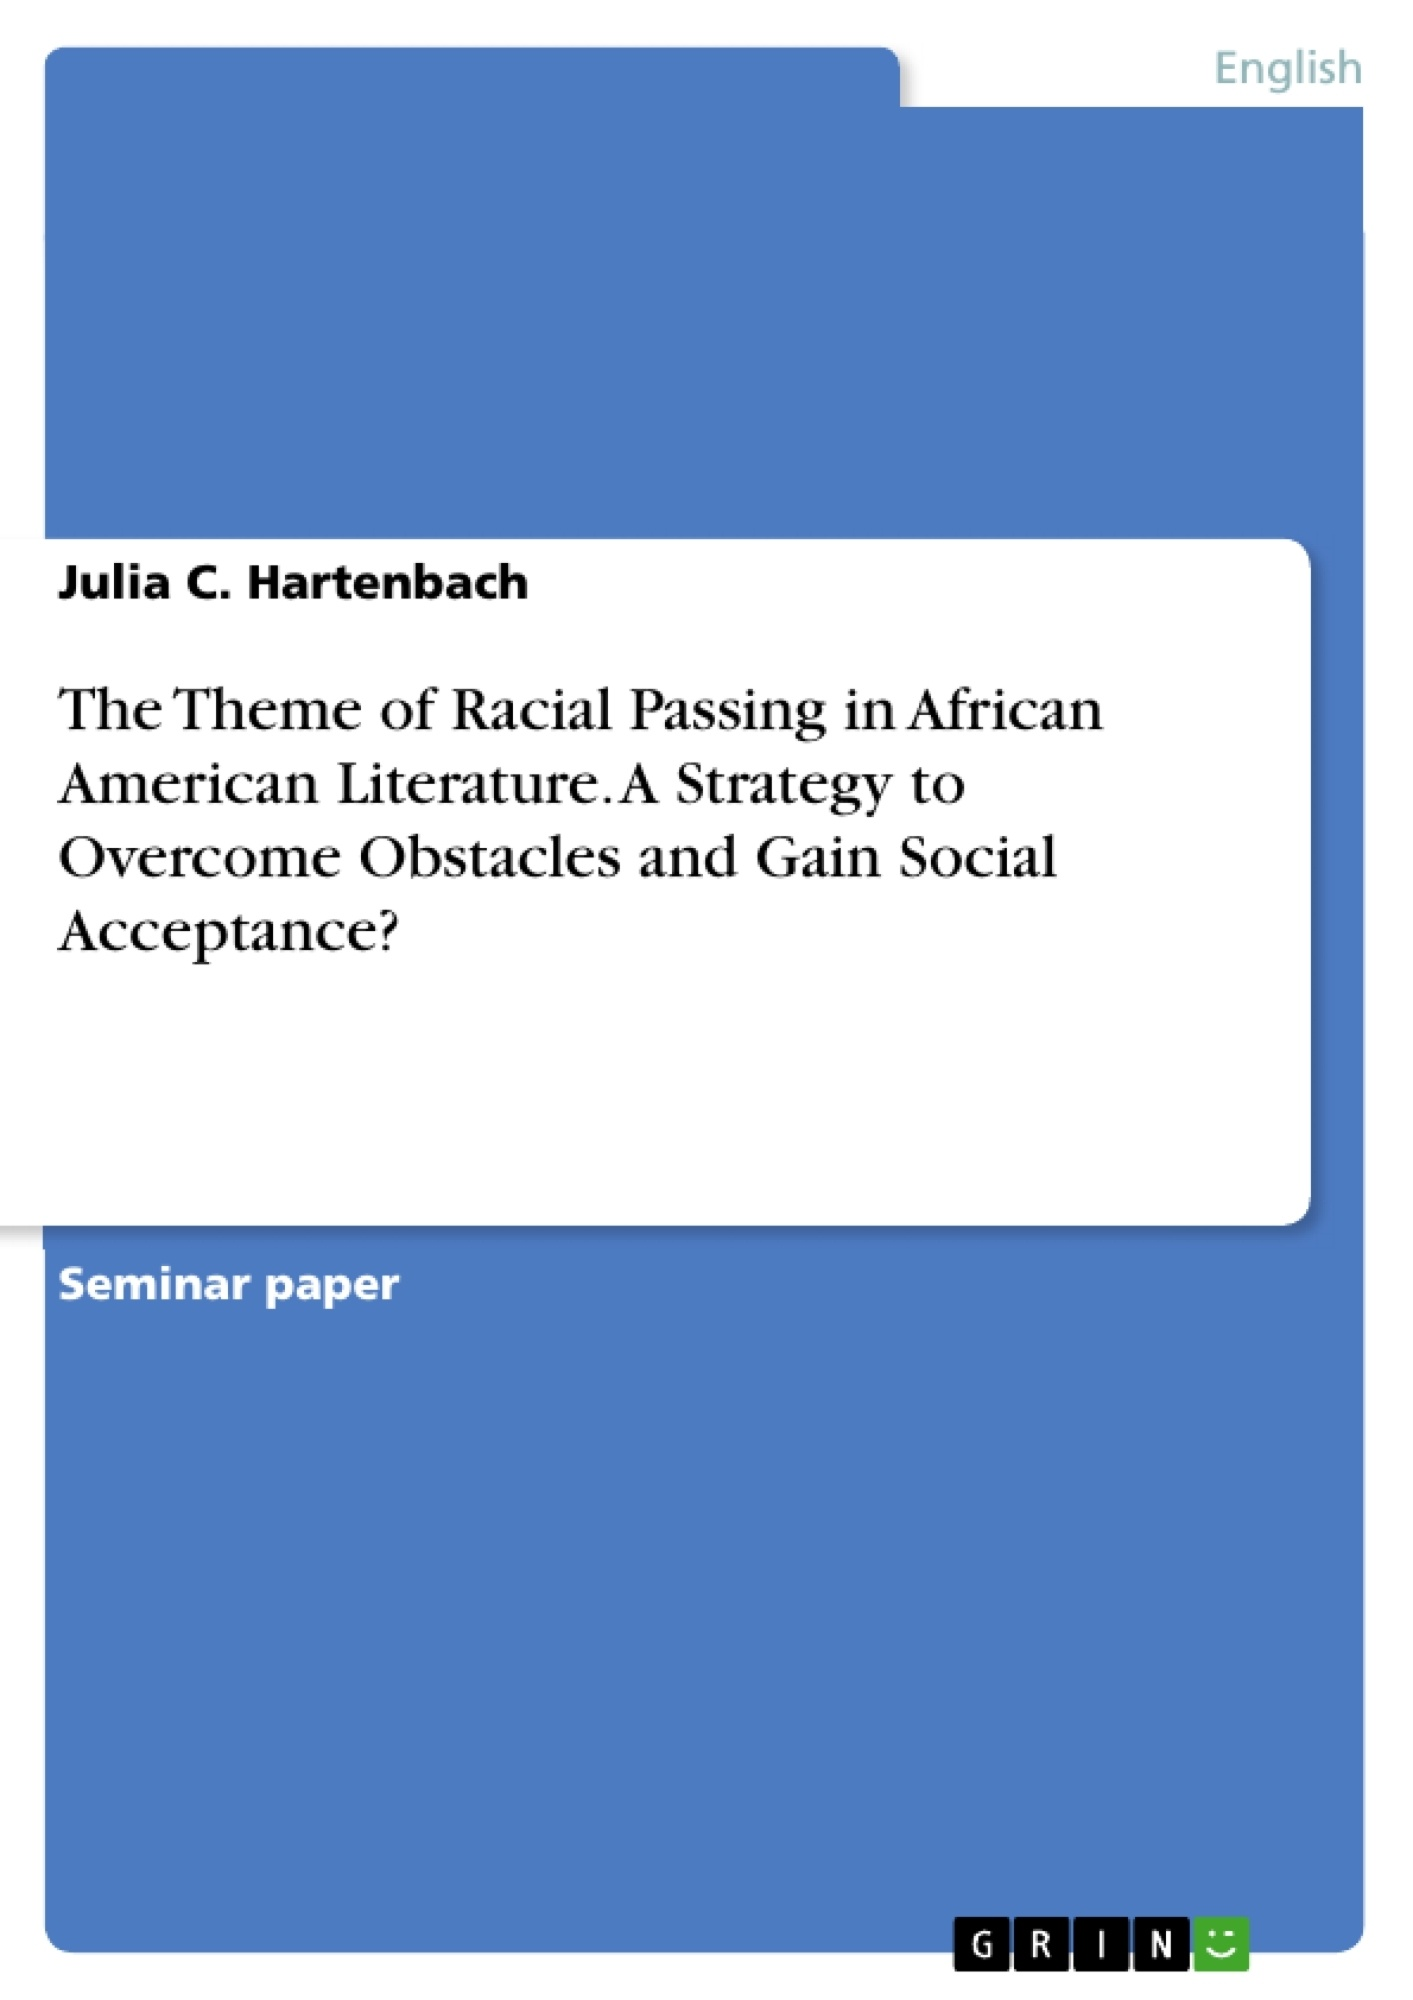 Title: The Theme of Racial Passing in African American Literature. A Strategy to Overcome Obstacles and Gain Social Acceptance?